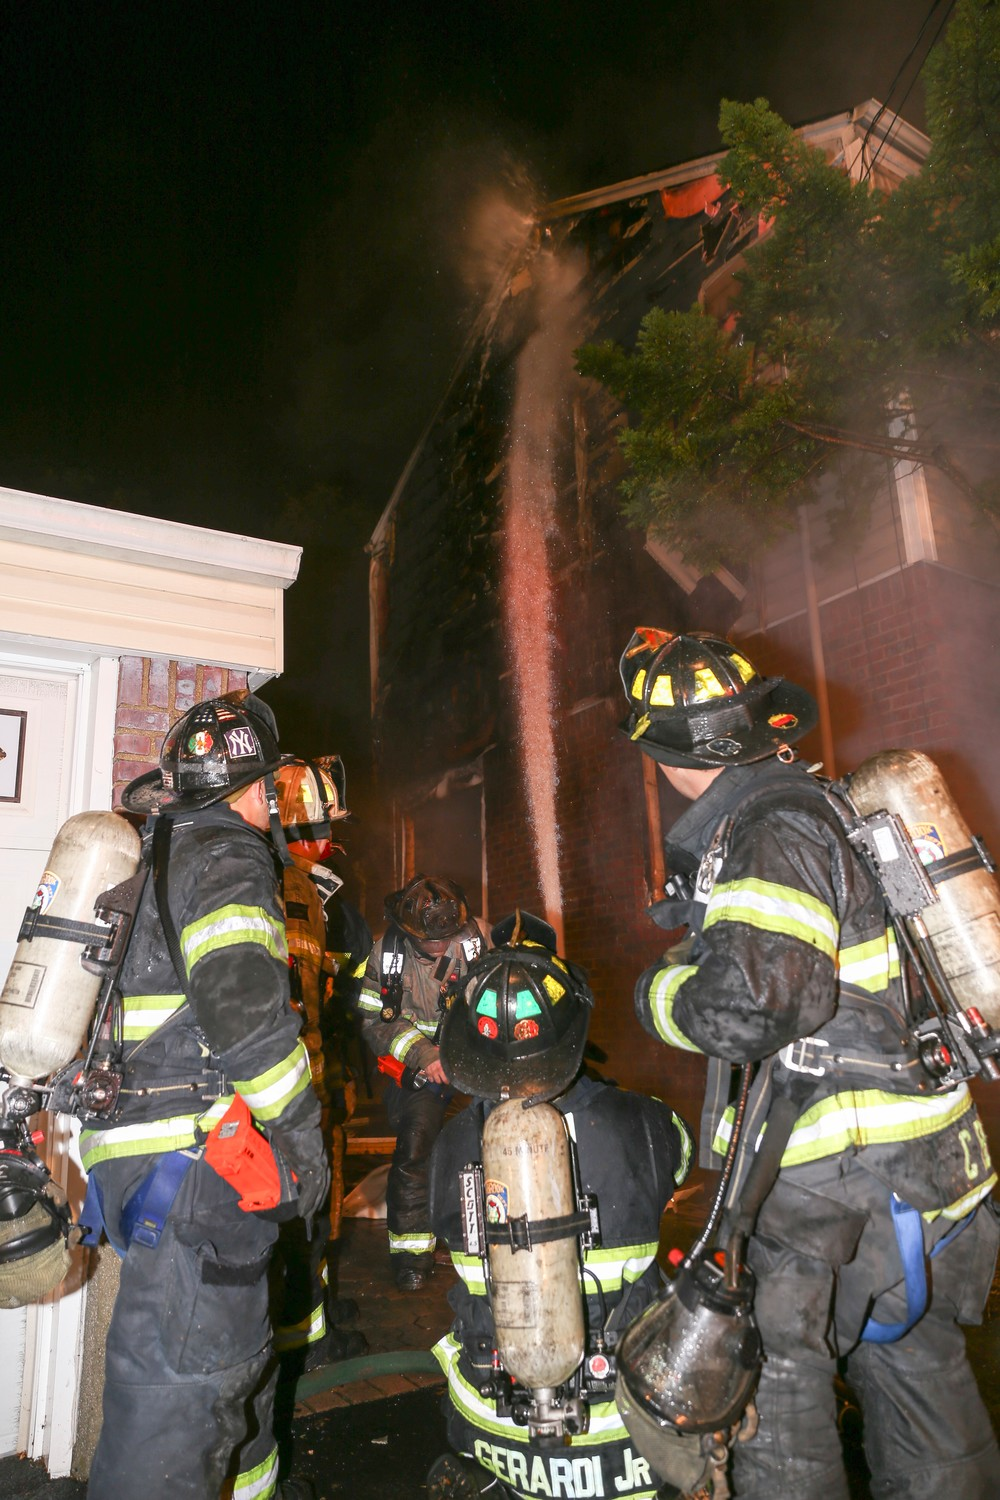 Firefighters battled the blaze until 6 a.m.